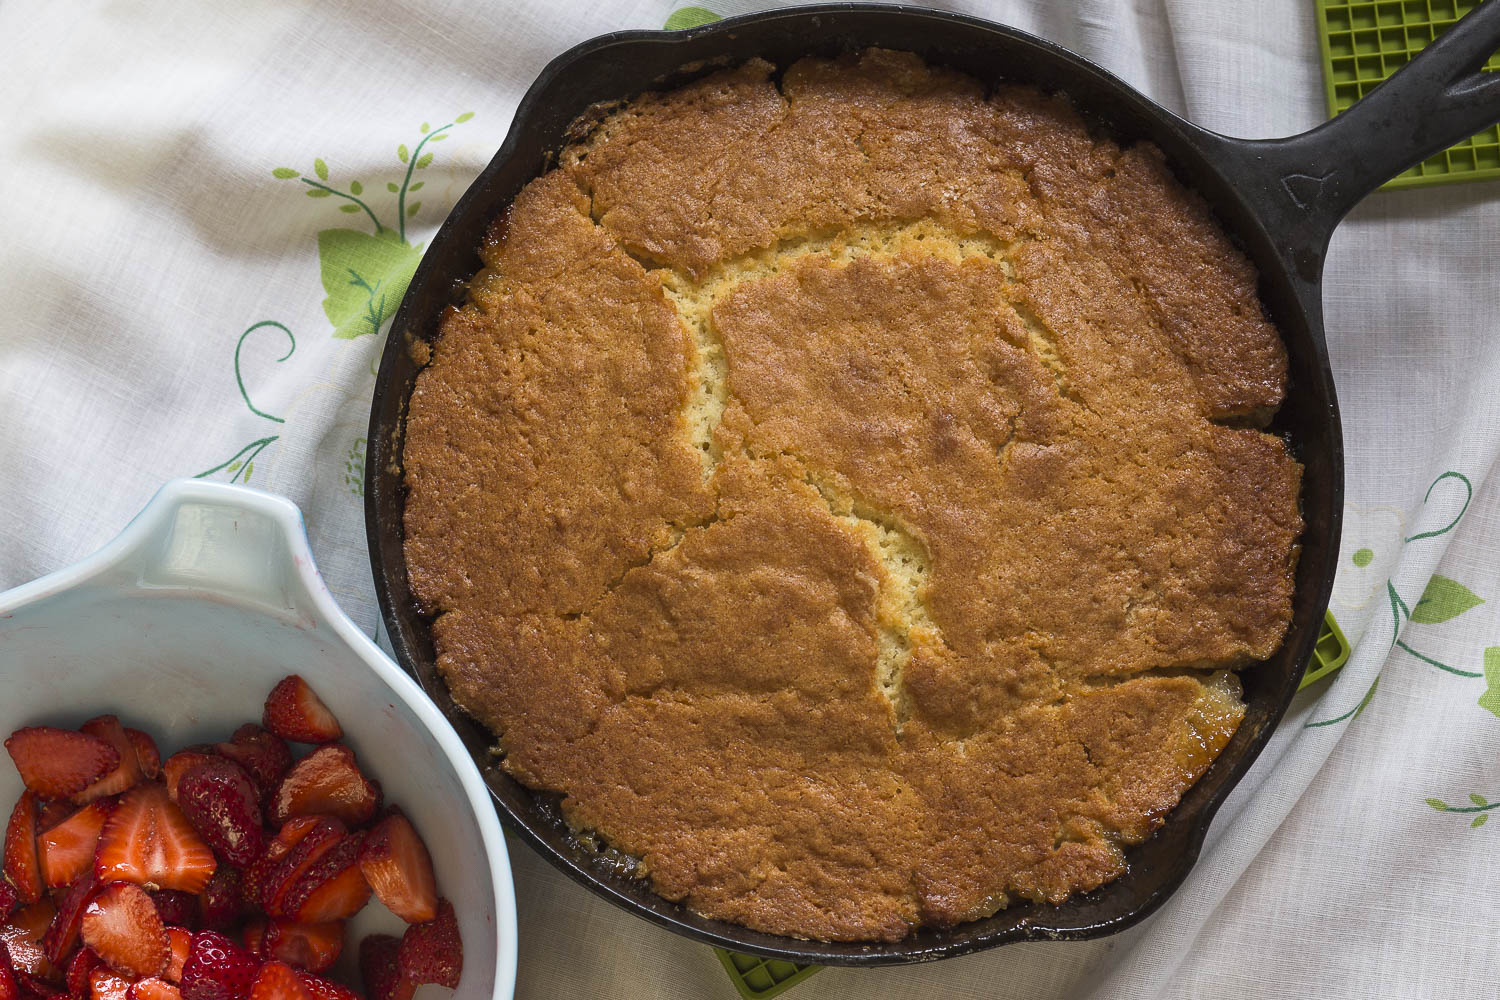 Cast Iron Rhubarb Upside Down Cake with fresh strawberries